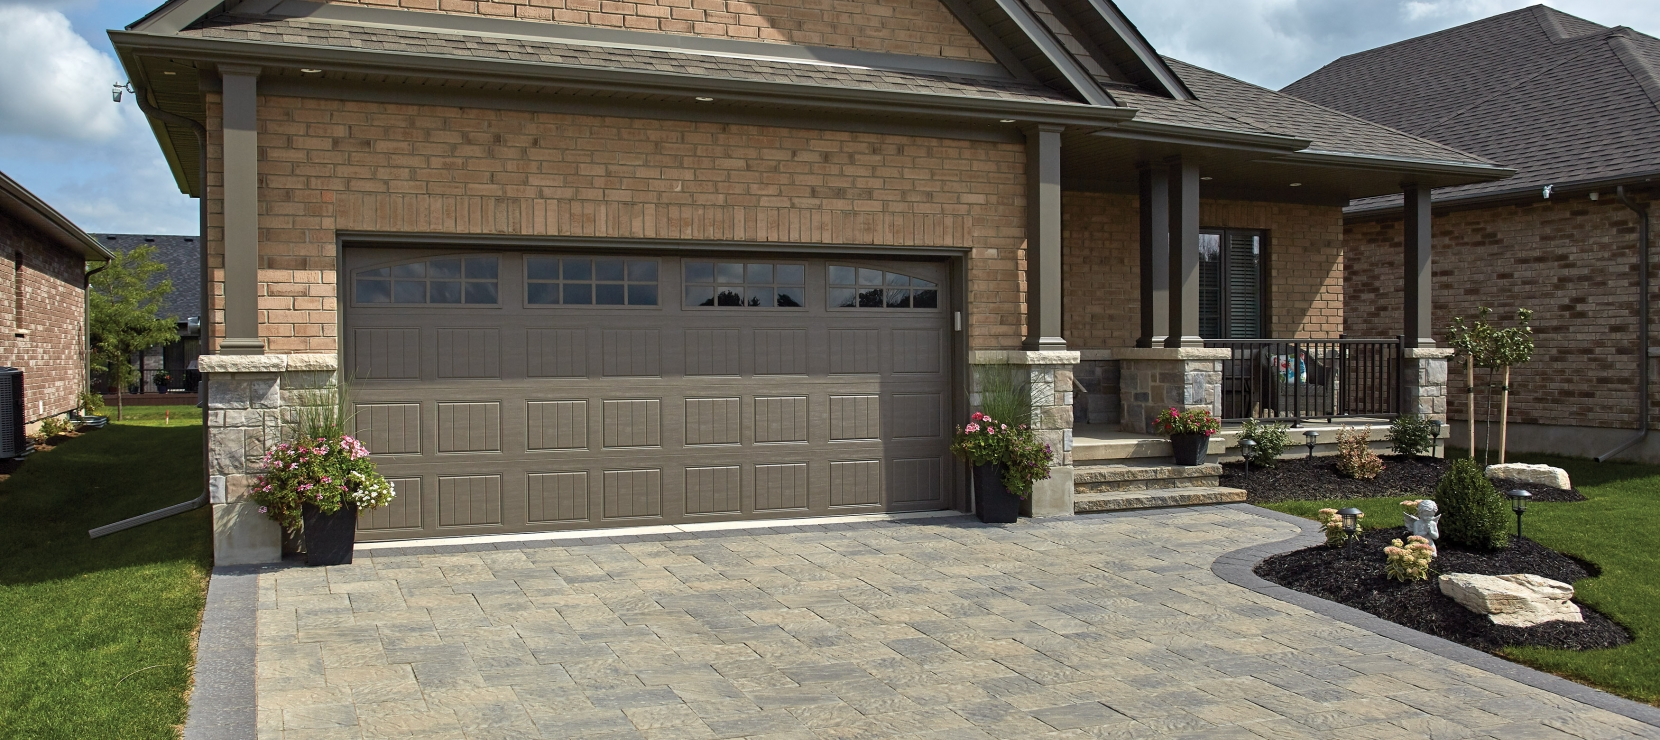 Driveway using Ridgefield Plus and Centurion products from Brampton Brick